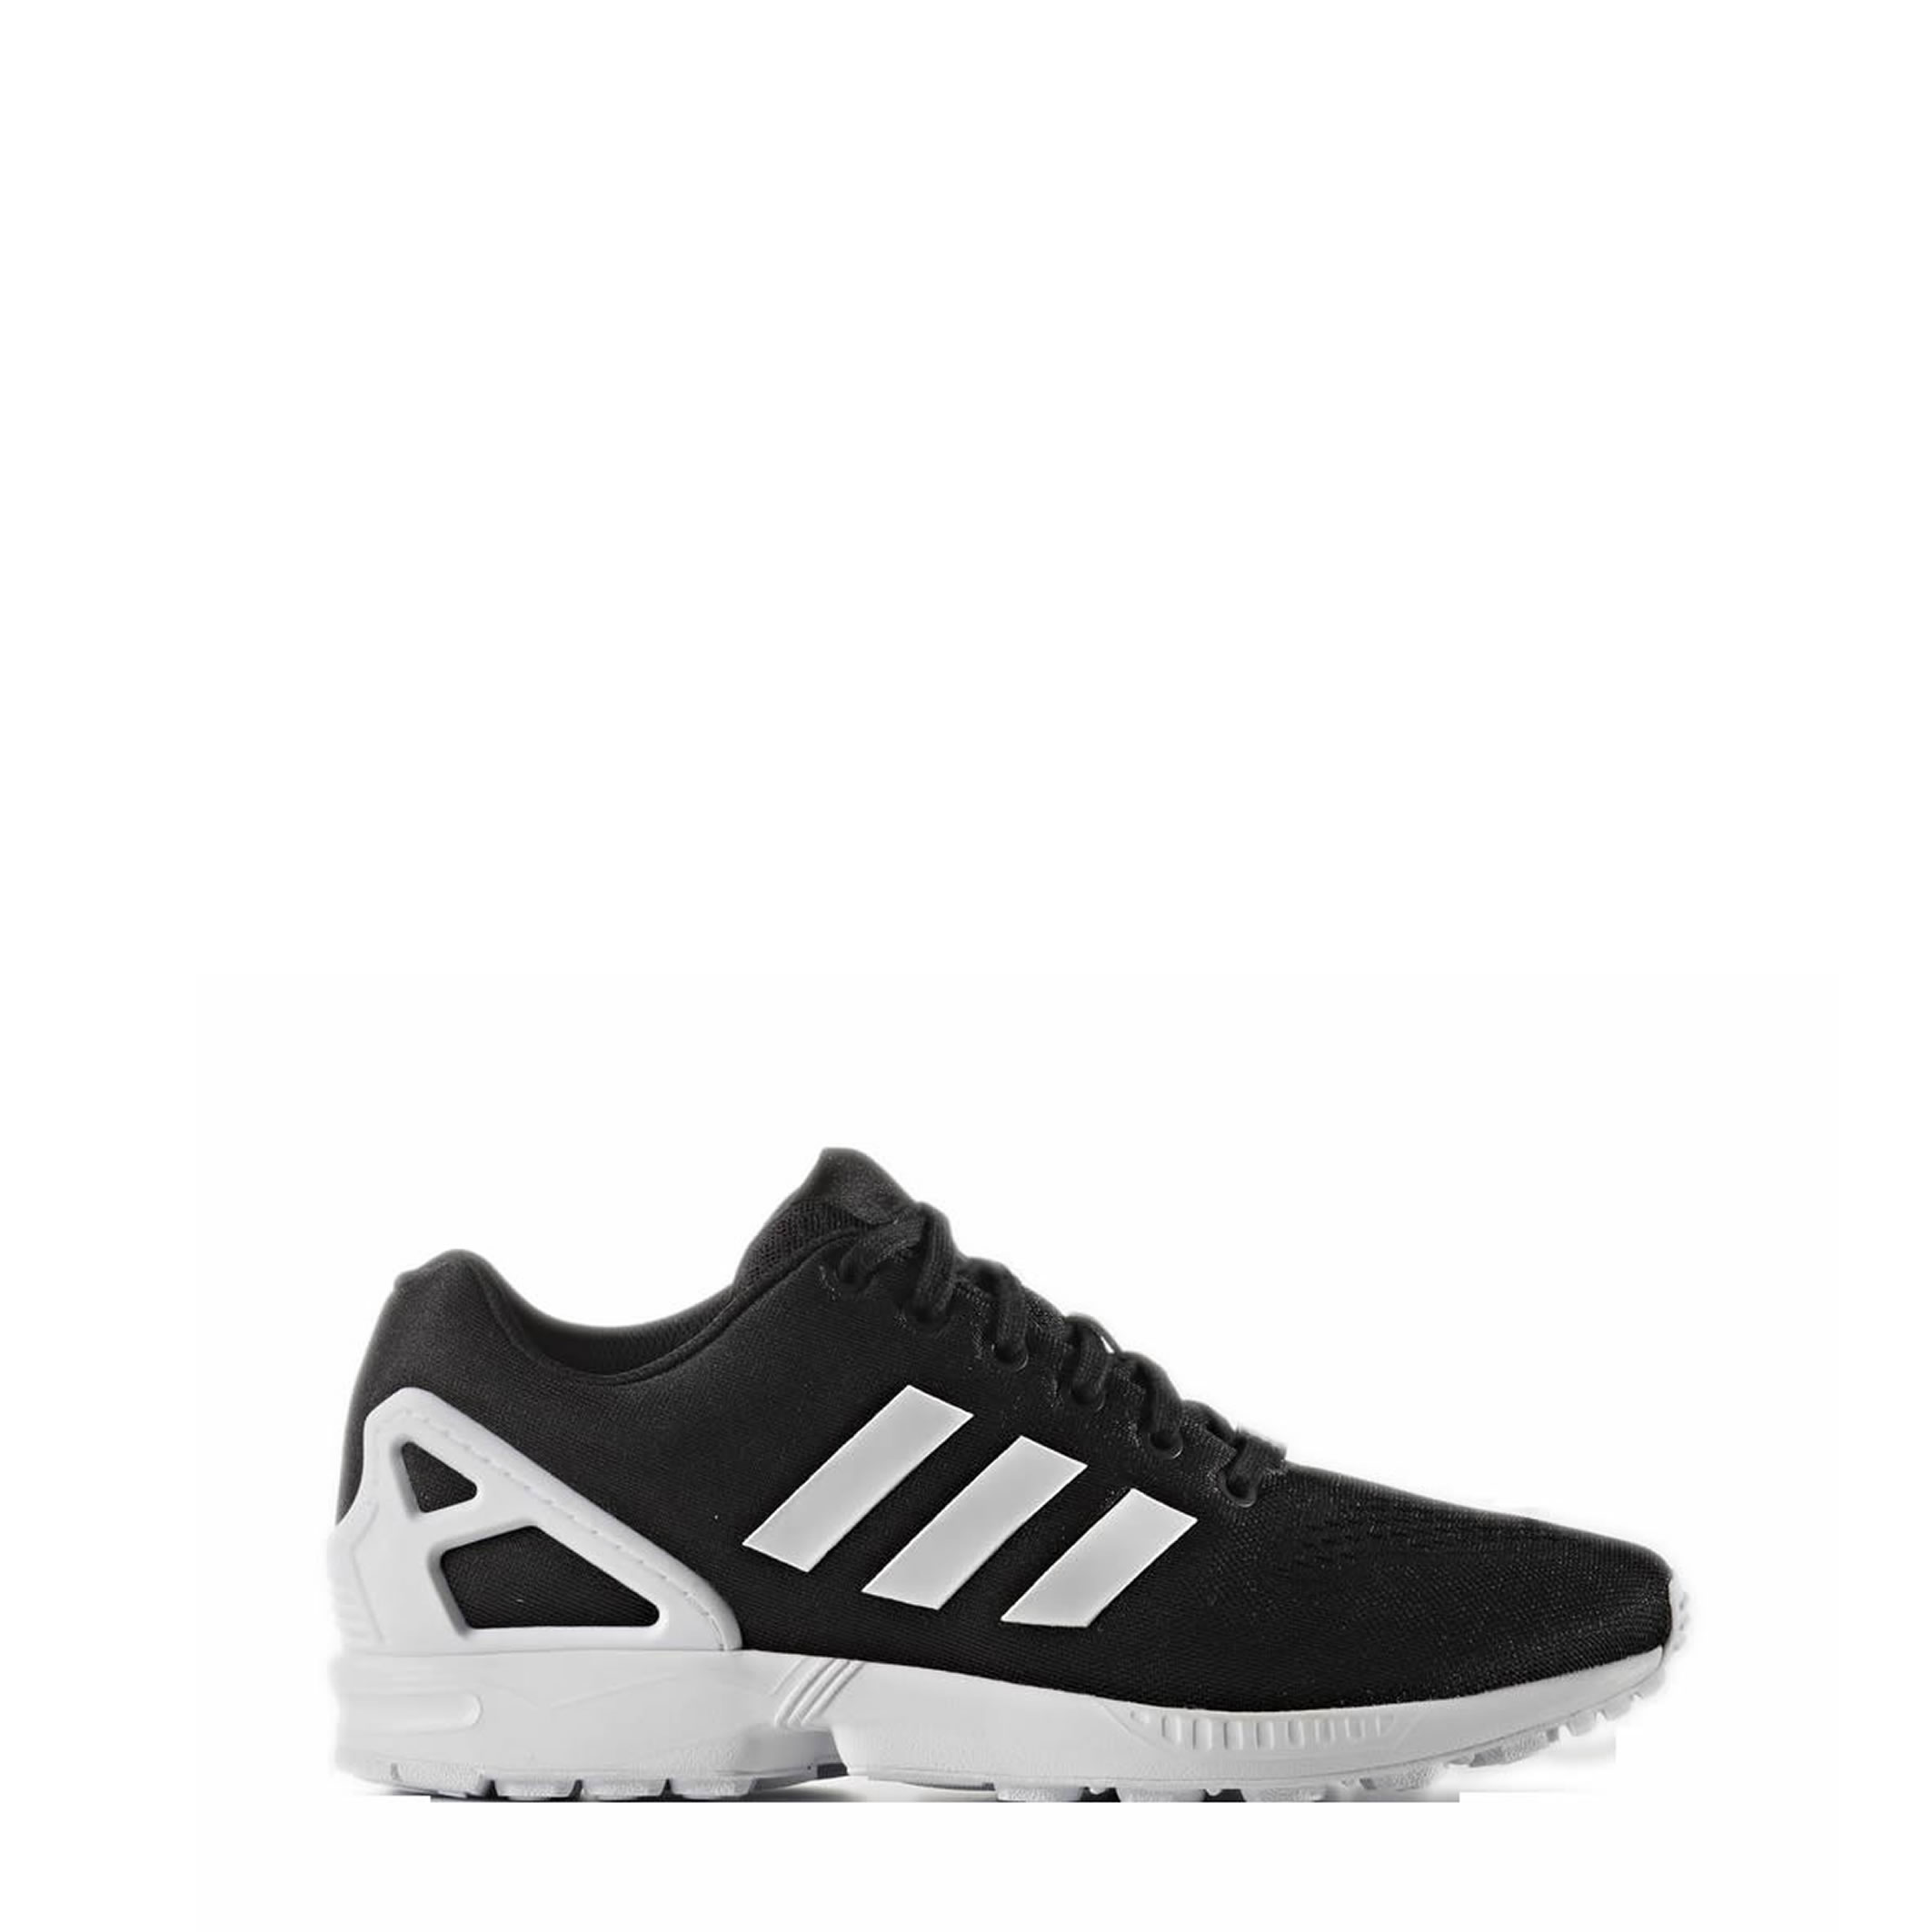 Adidas ZX Flux Low-Top Trainers in